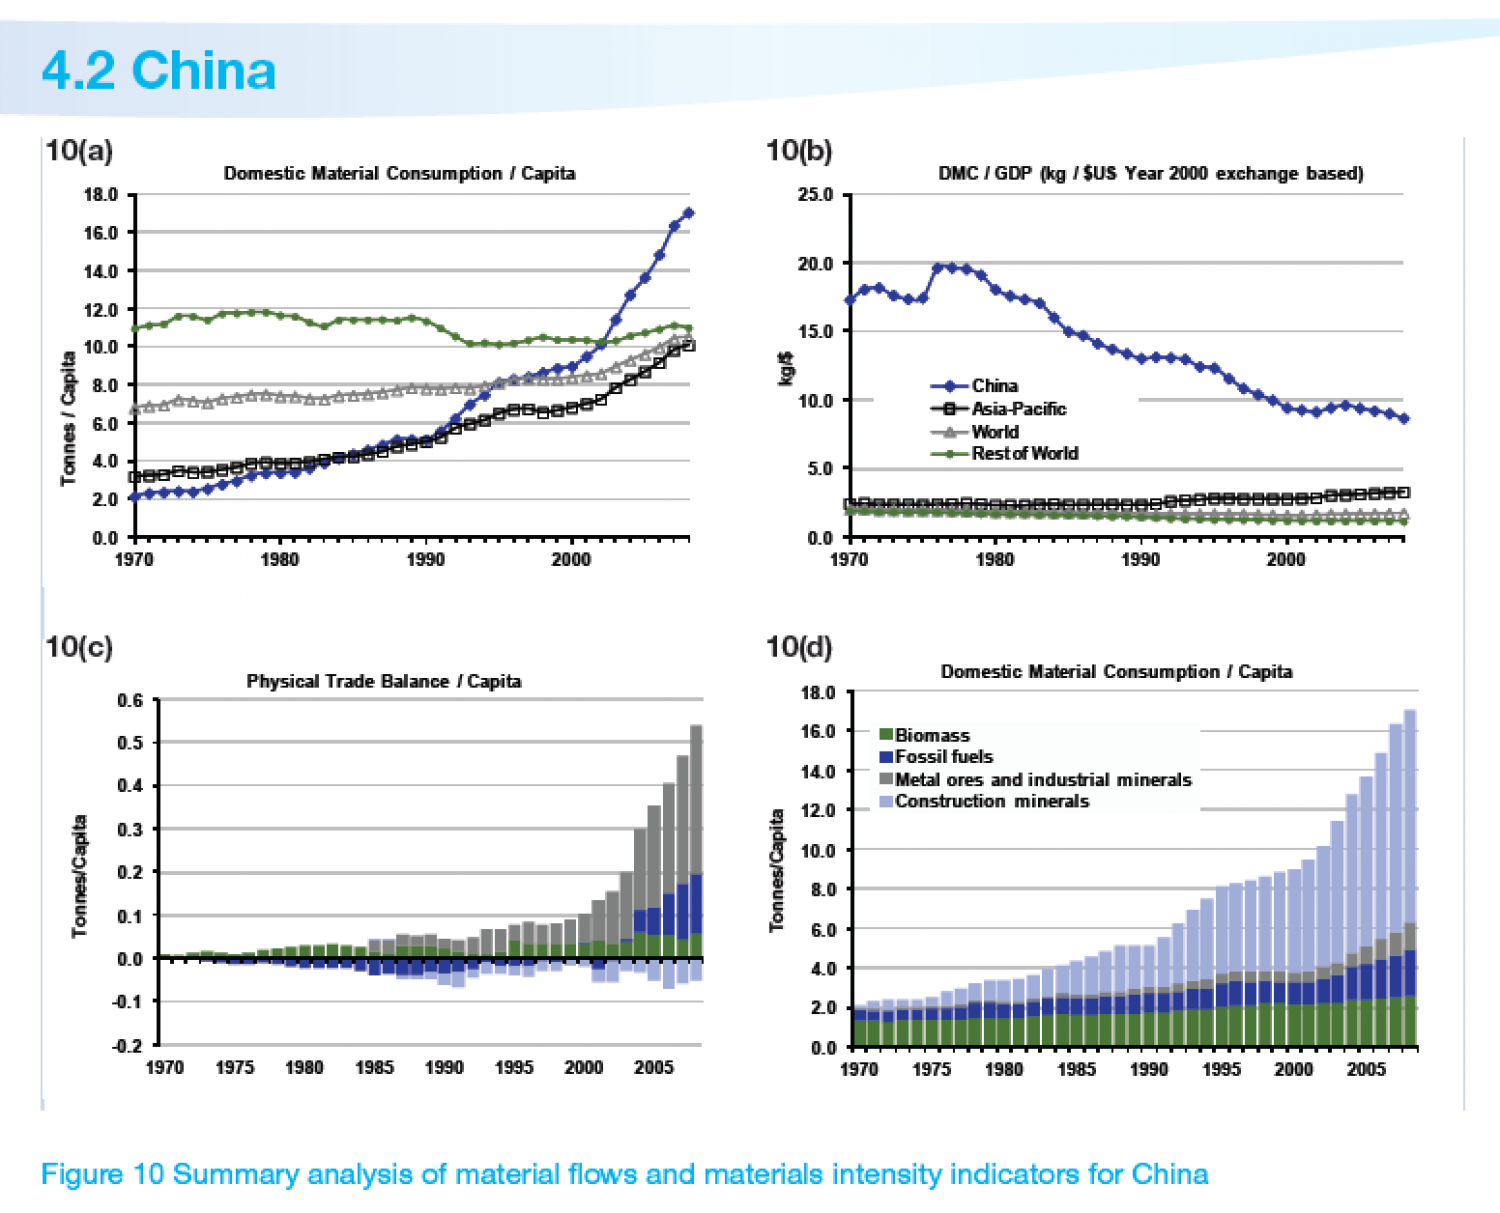 CHINA : Summary analysis of material flows and materials intensity indicators Infographic